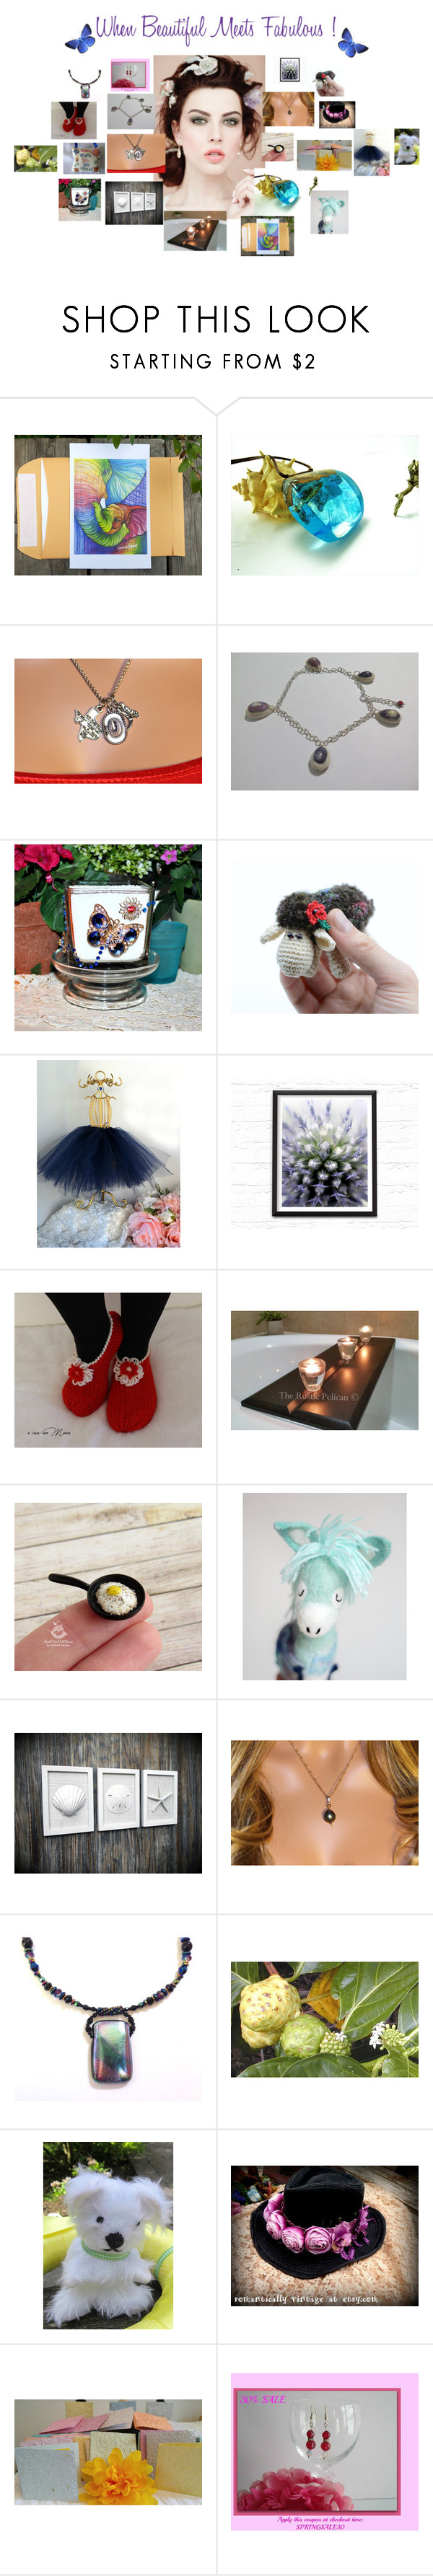 """""""When Beautiful meets Fabulous !"""" by zebacreations ❤ liked on Polyvore featuring Sarah Jane"""